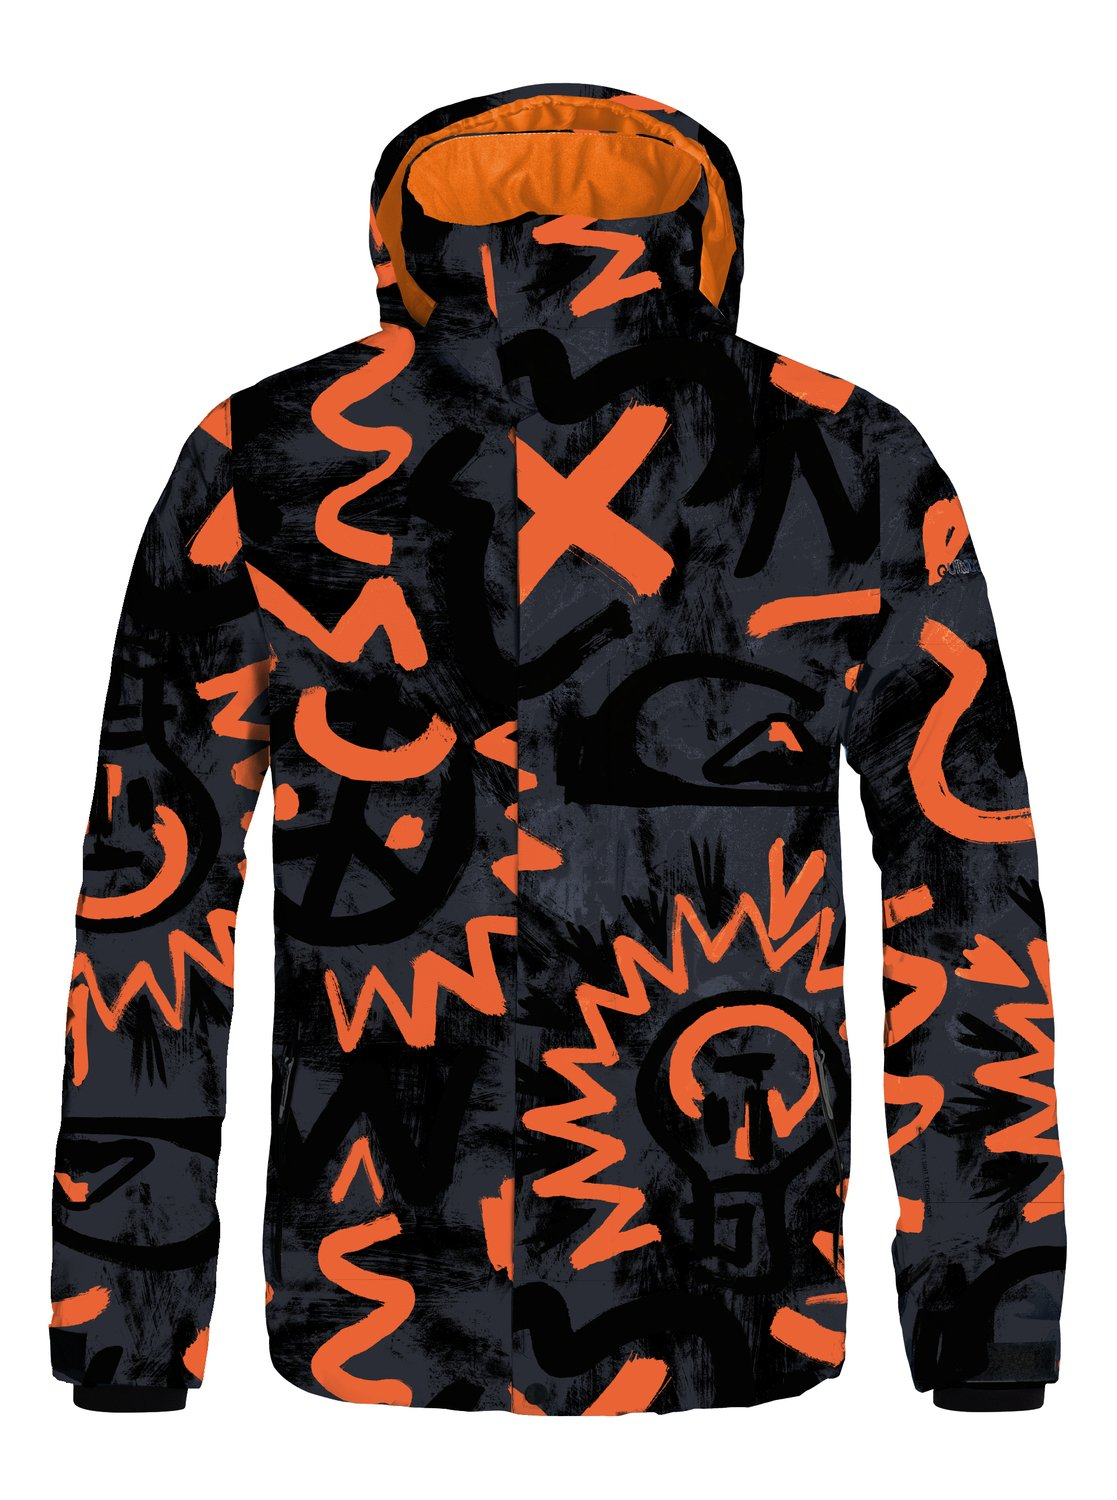 Mission Printed - Quiksilver������� ��������������� ������ Mission Printed �� ����� ��������������� ��������� Quiksilver. ��������������: ����������� ��� ���������, �������� ����������, ������� � ������������, ������� ������������ ������ � ������, ������ ���������� �� ��������� ������� �� ����������. ������: 100% ���������.<br>